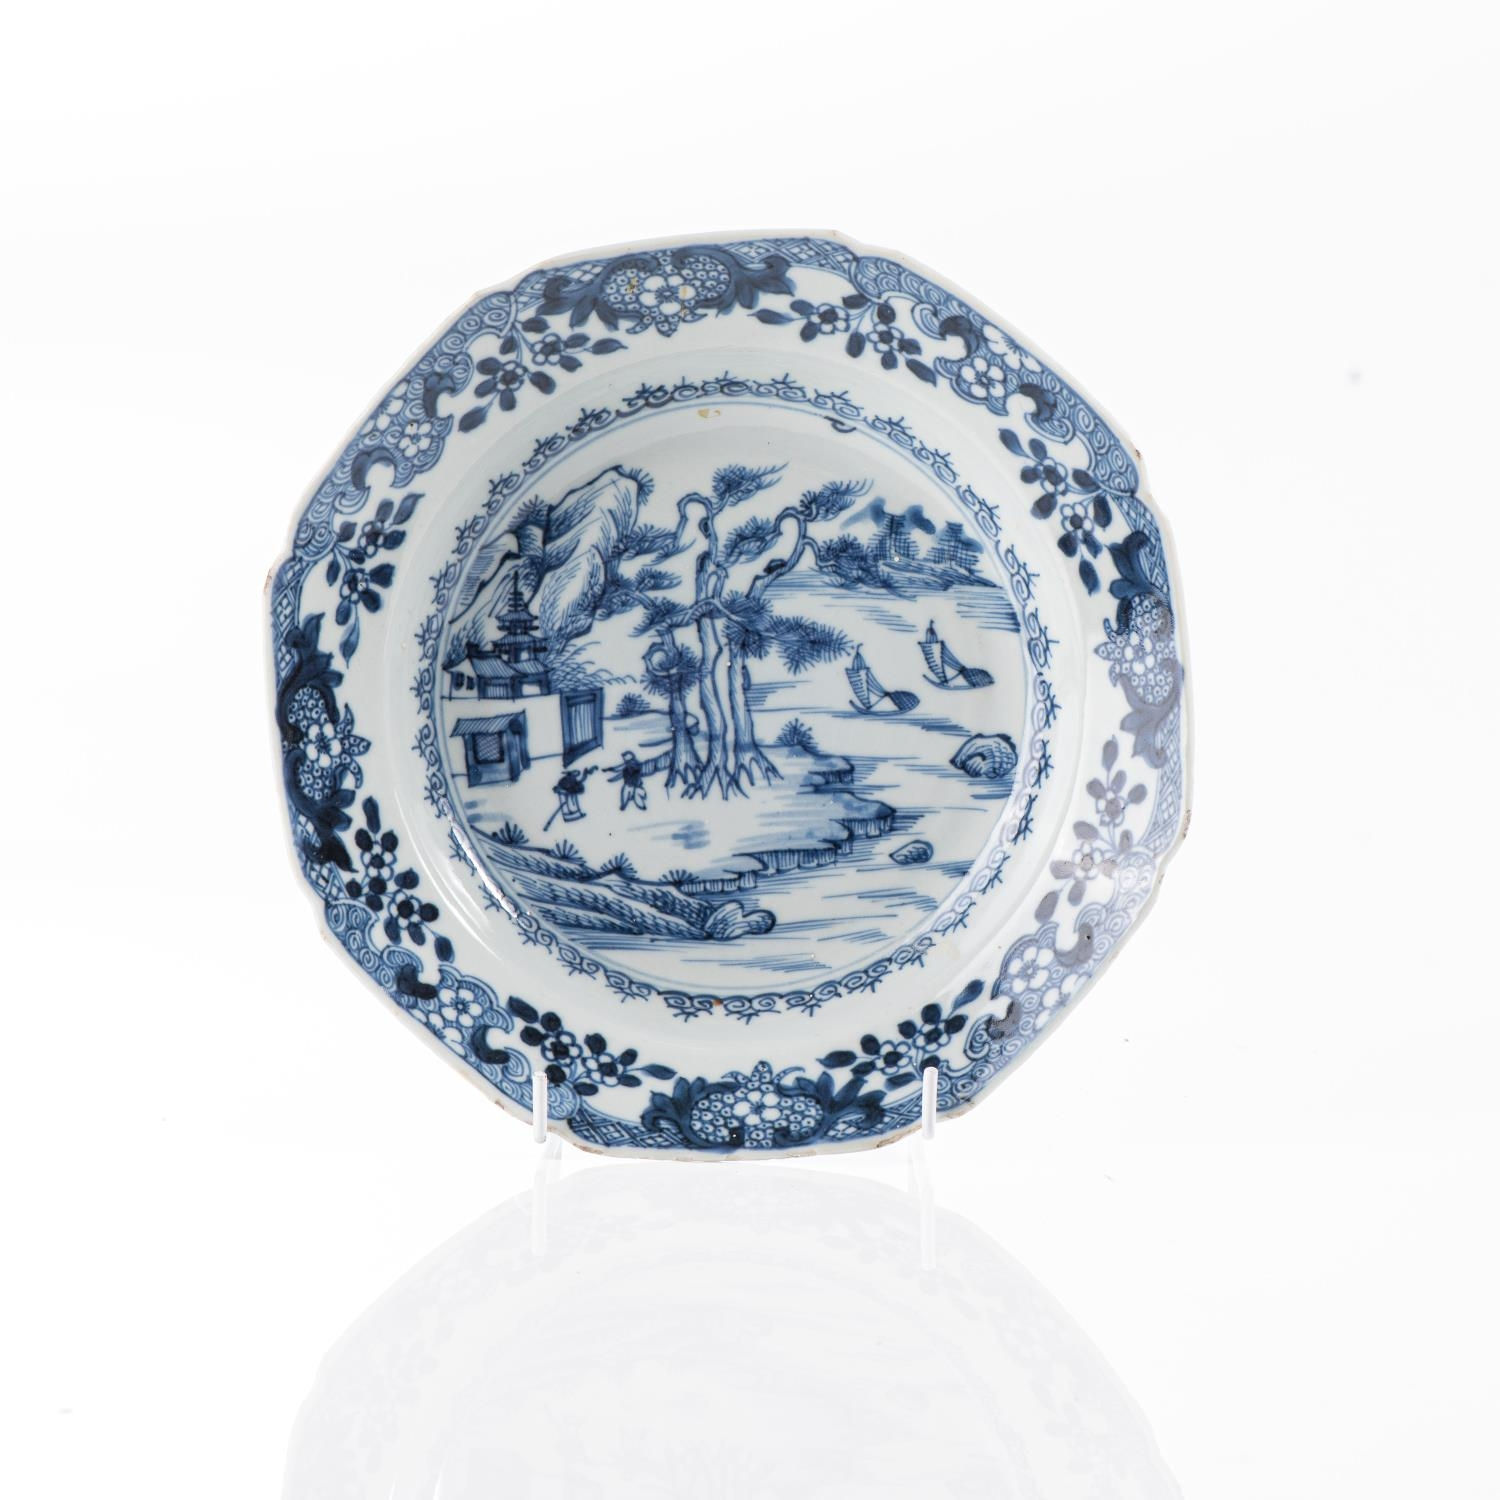 A CHINESE BLUE AND WHITE PINE AND PAGODA PLATE, QING DYNASTY, 18TH CENTURY